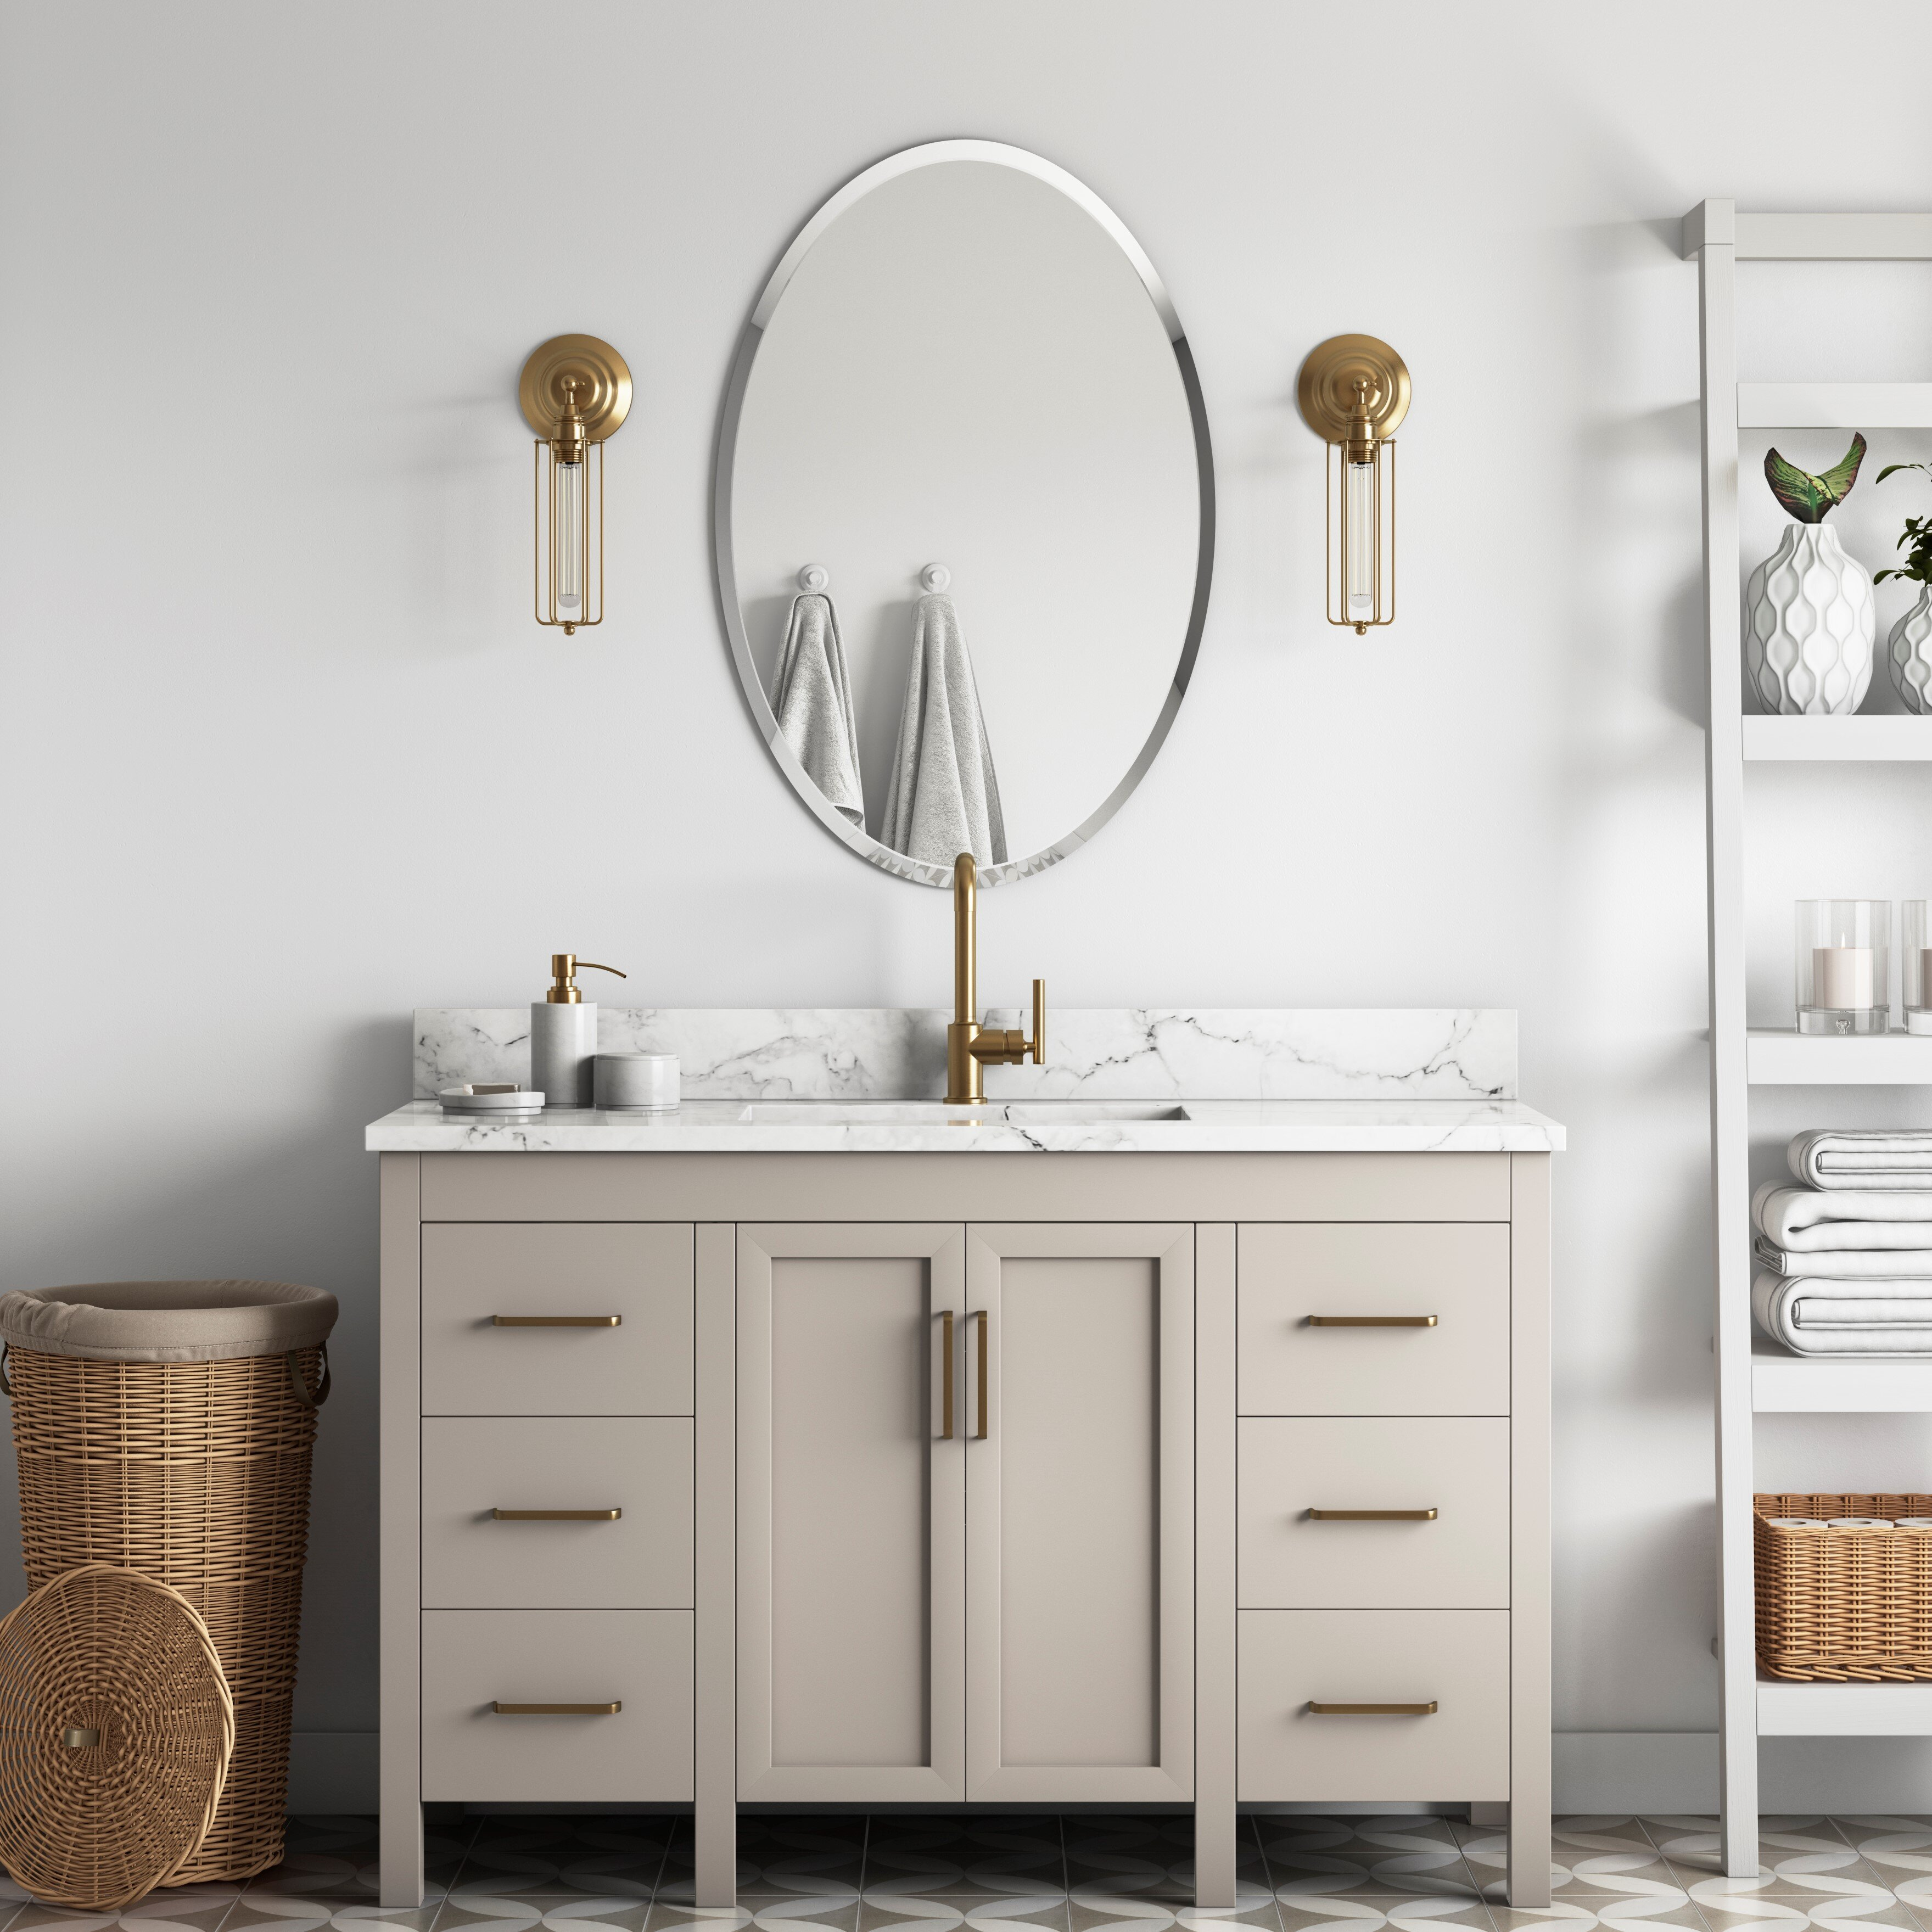 Modern Contemporary Oval Mirrors You Ll Love In 2021 Wayfair